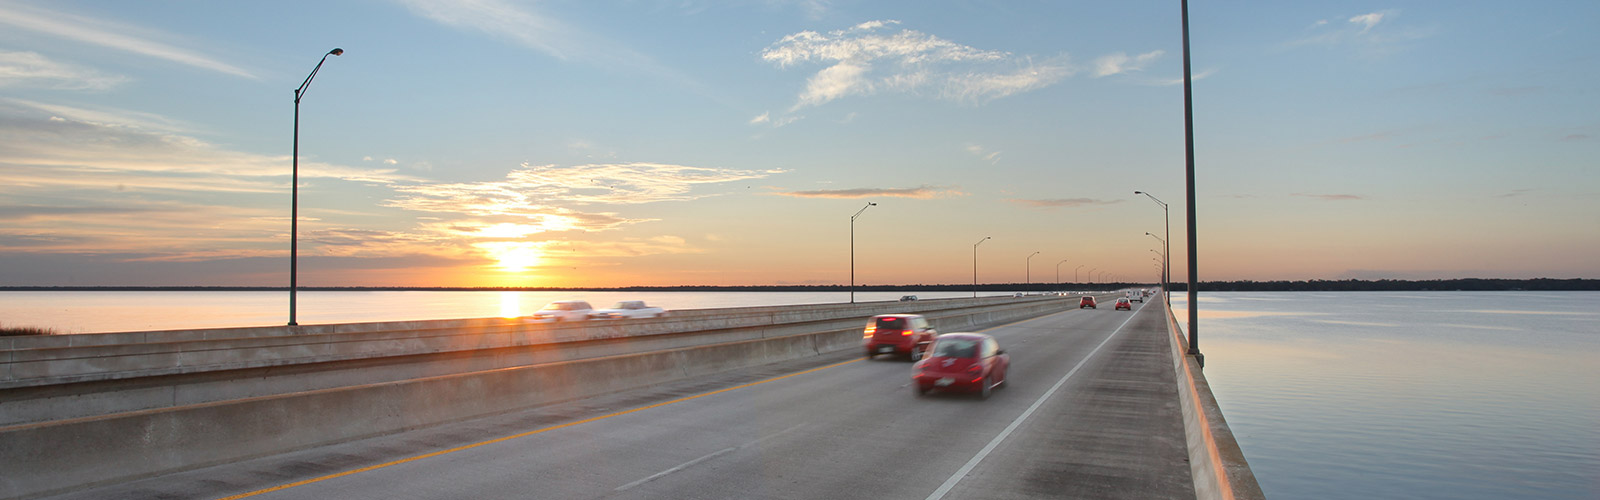 Central Florida Expressway bridge at sunset